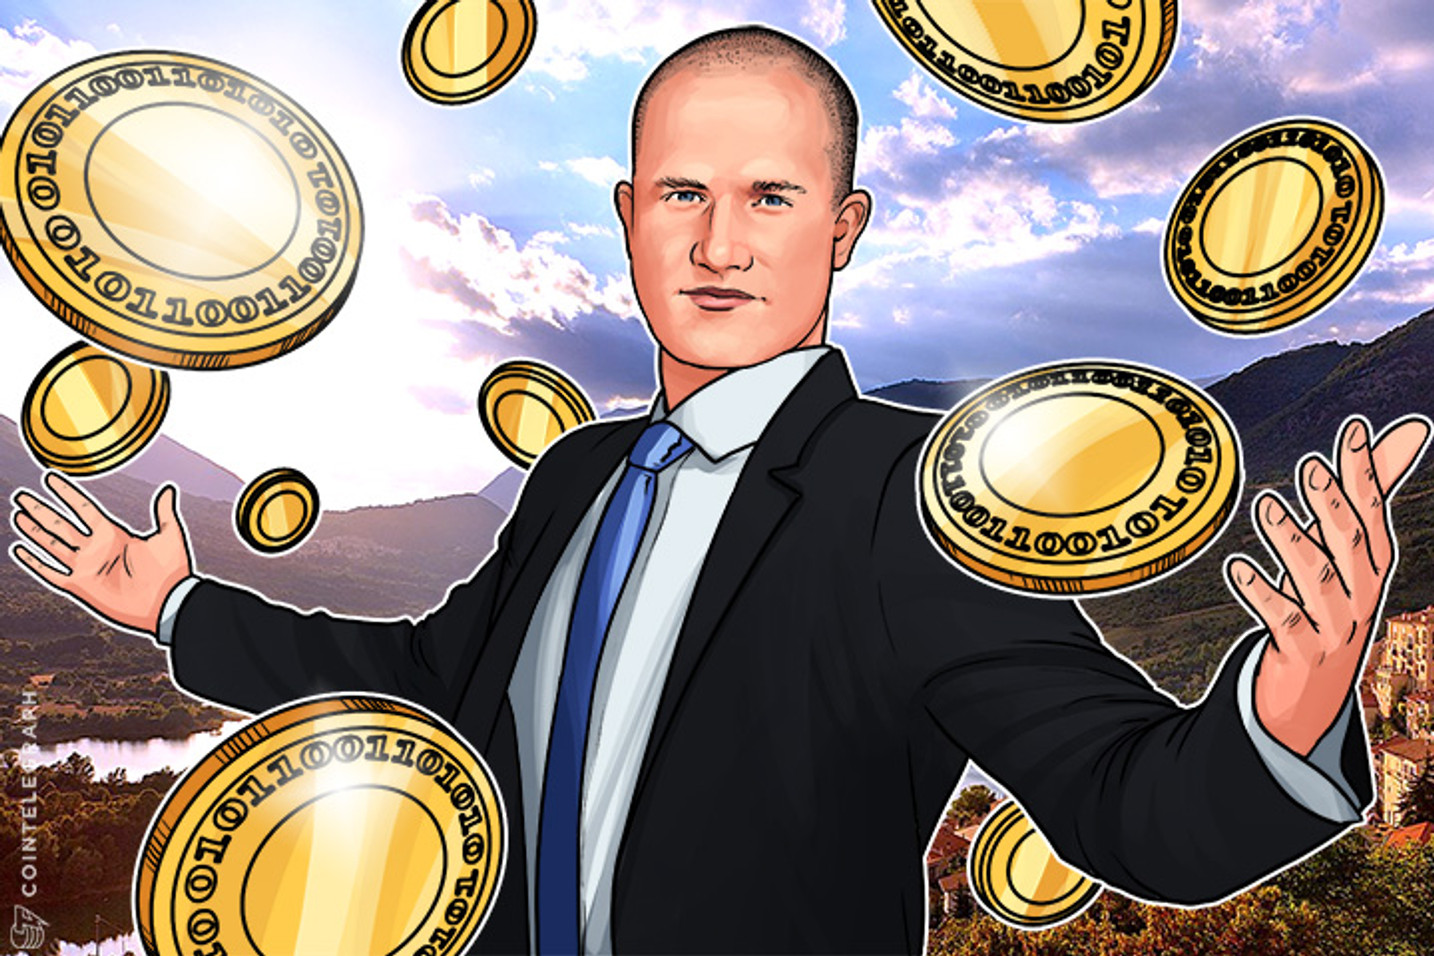 Coinbase Seeks to Raise $1 Bln To Expand and Go Beyond Bitcoin